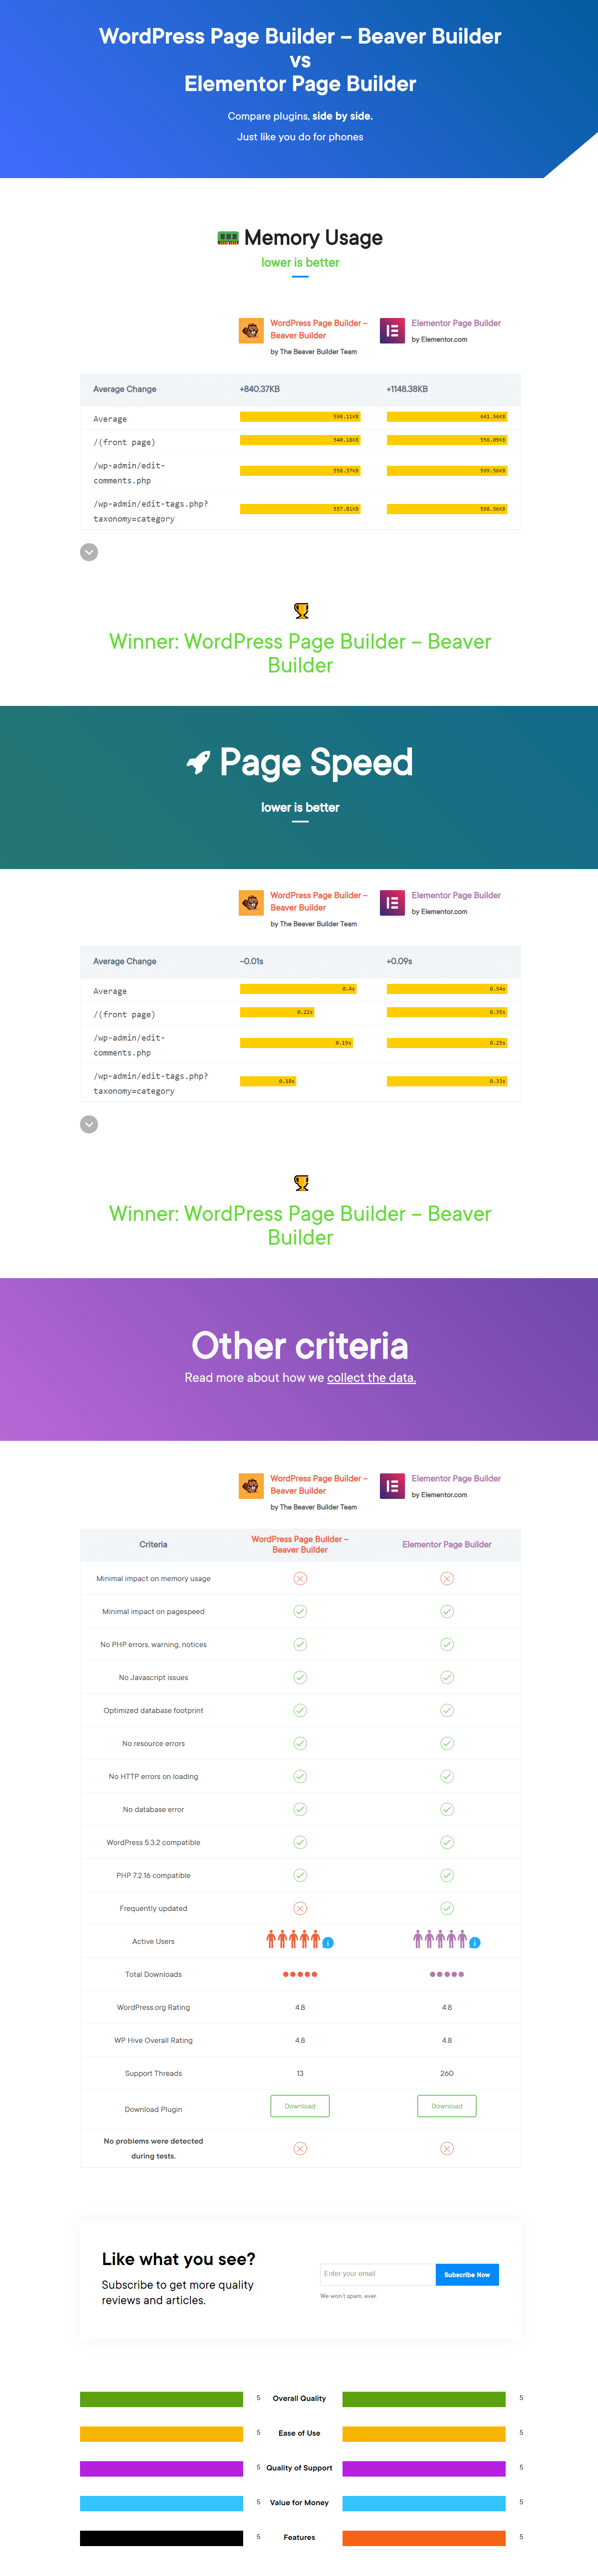 Beaver Builder vs Elementor side by side compare